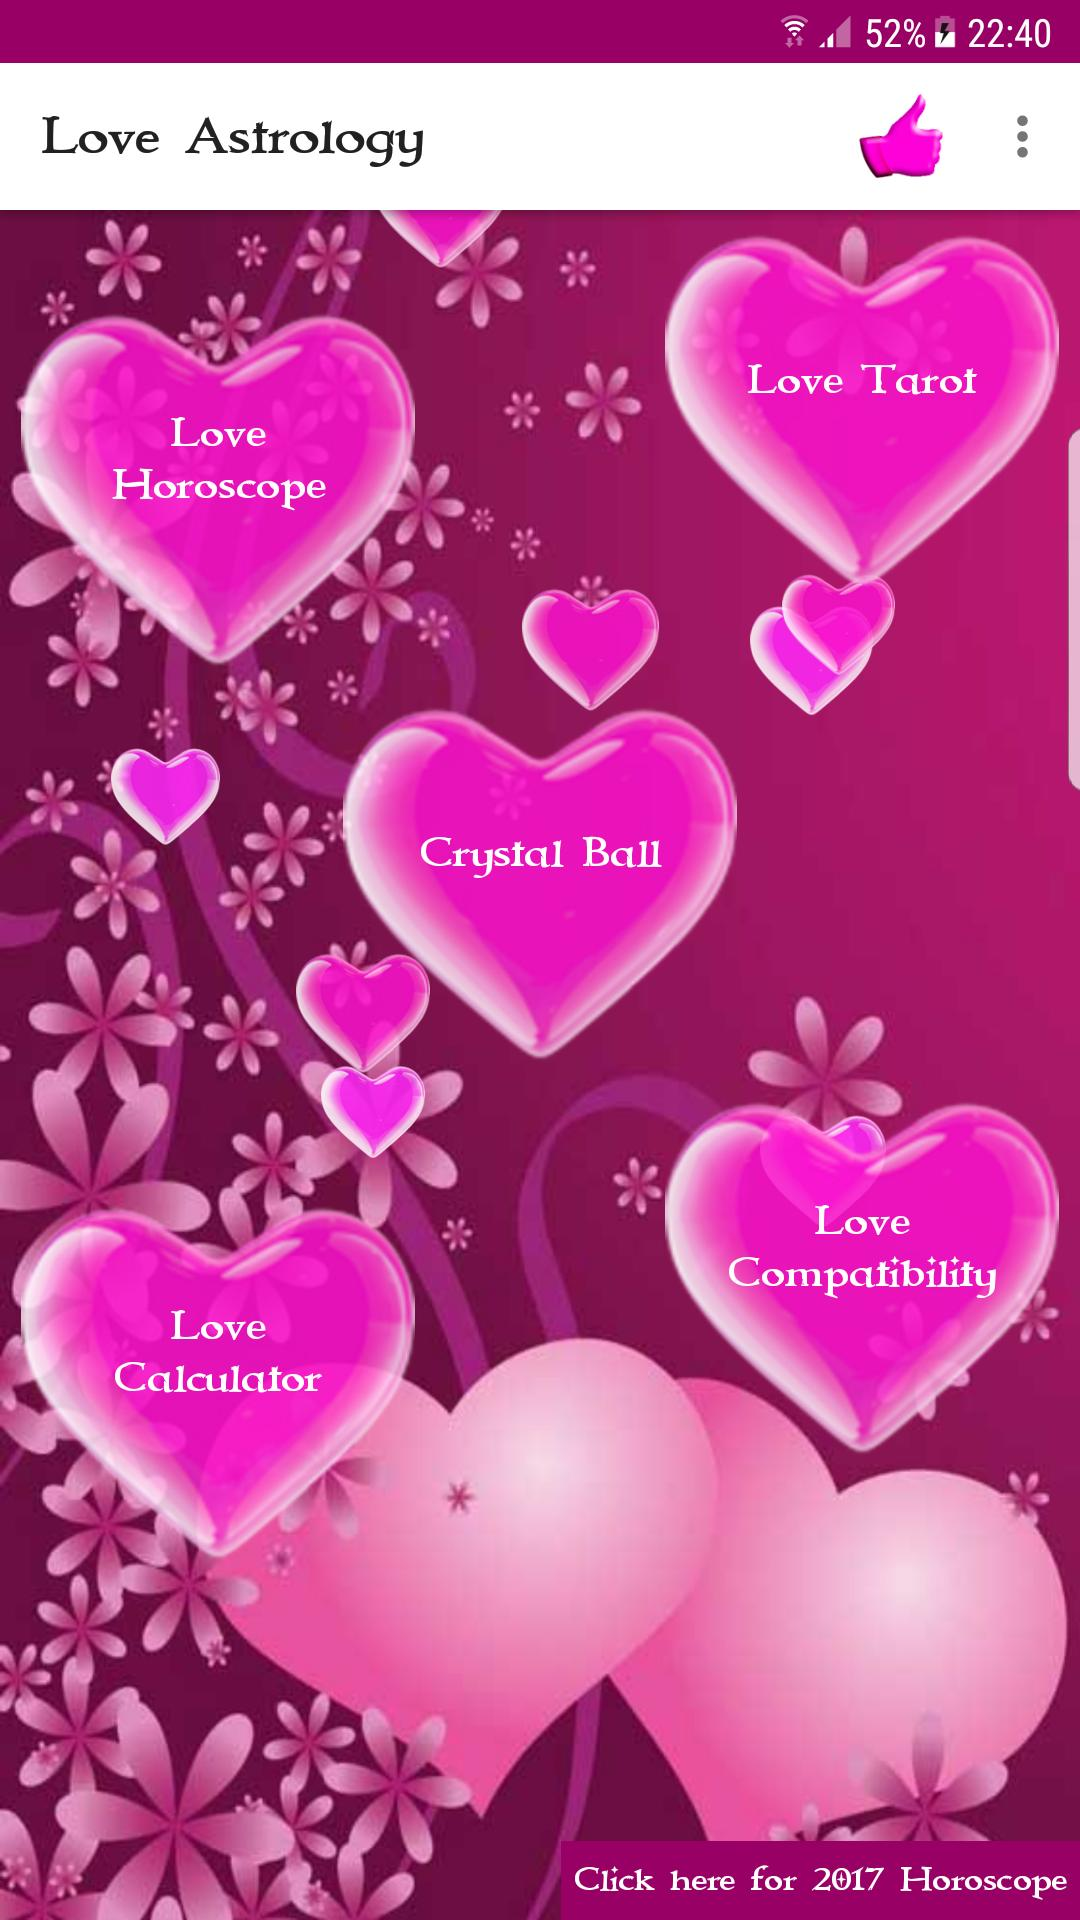 Love Astrology for Android - APK Download